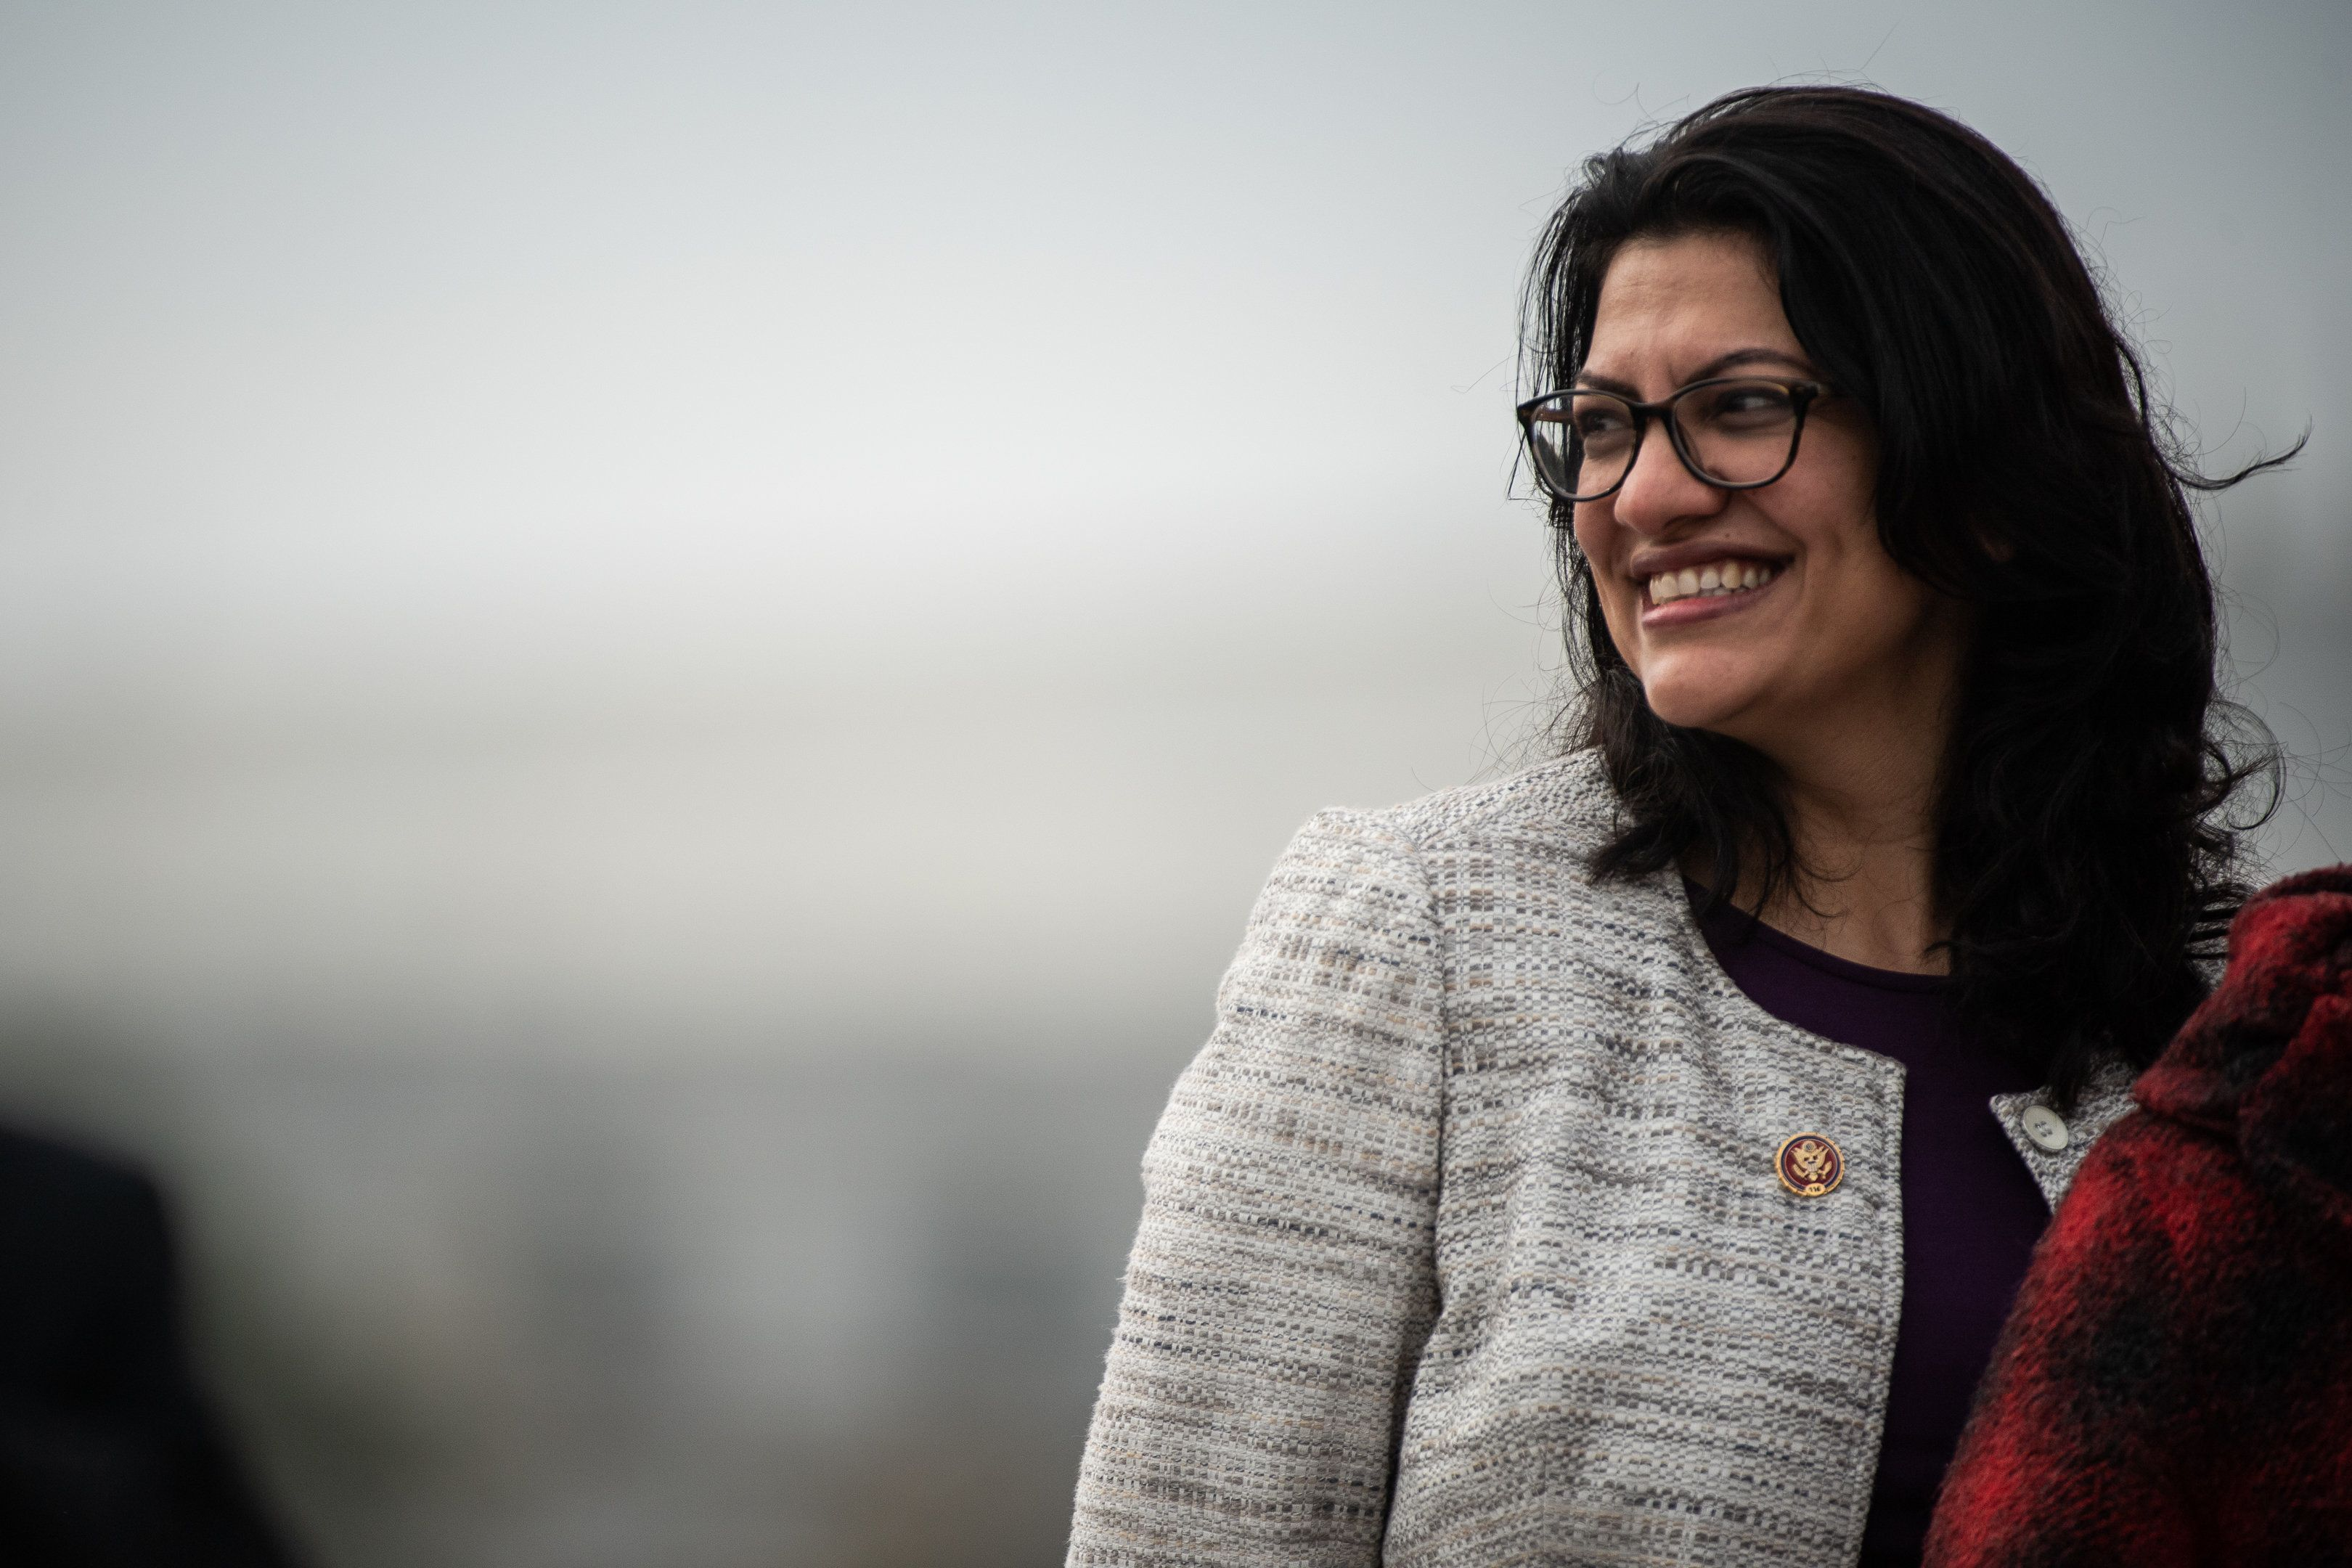 Rep. Rashida Tlaib is already being unfairly scrutinized for her open support of Palestinian rights and the Boycott, Div